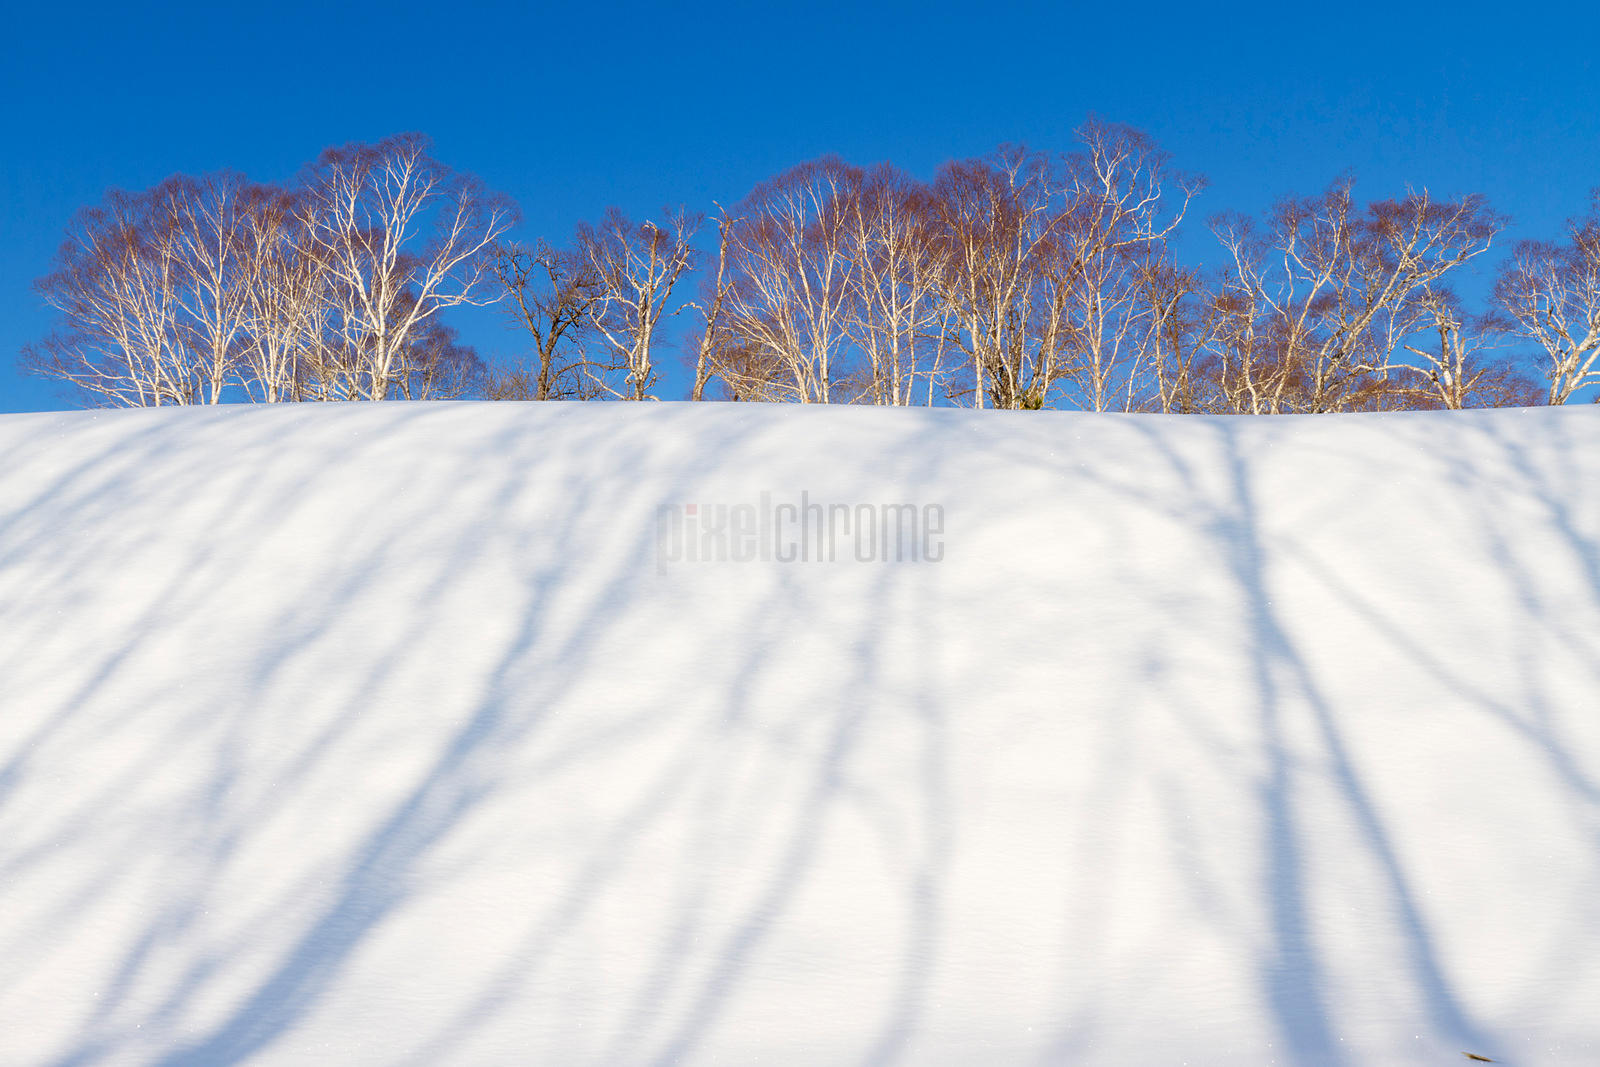 Snow Bank and Silver Birch Trees